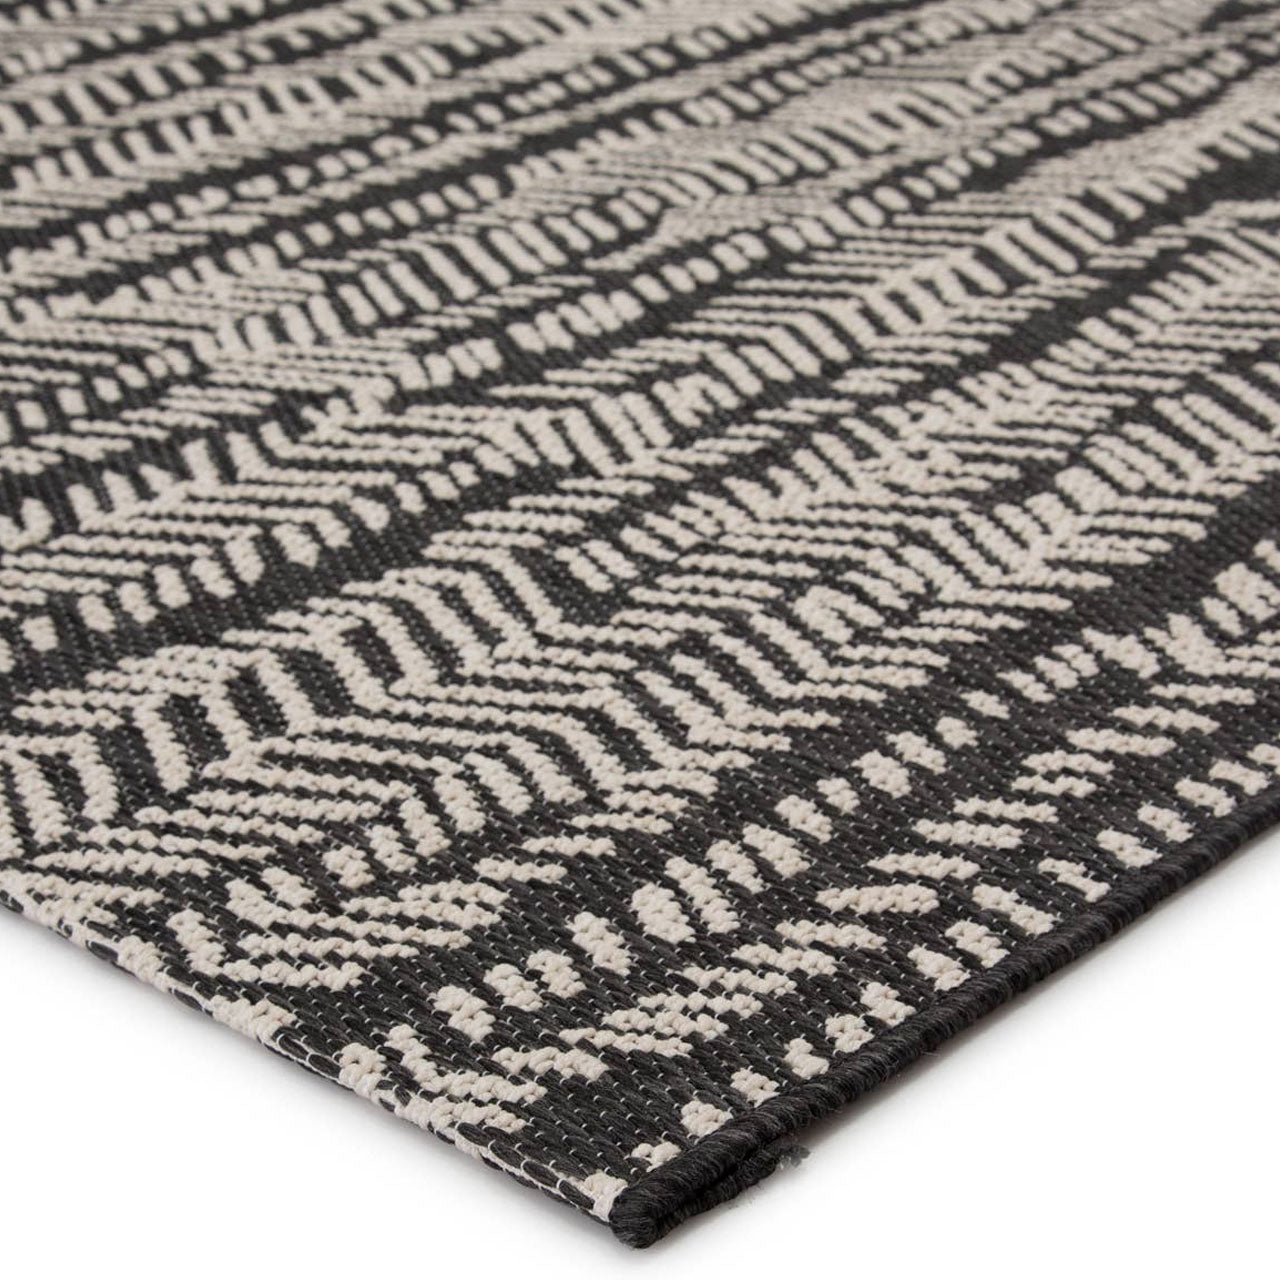 Tiffany Hunter Home & Design Center Outdoor Rugs for Sale